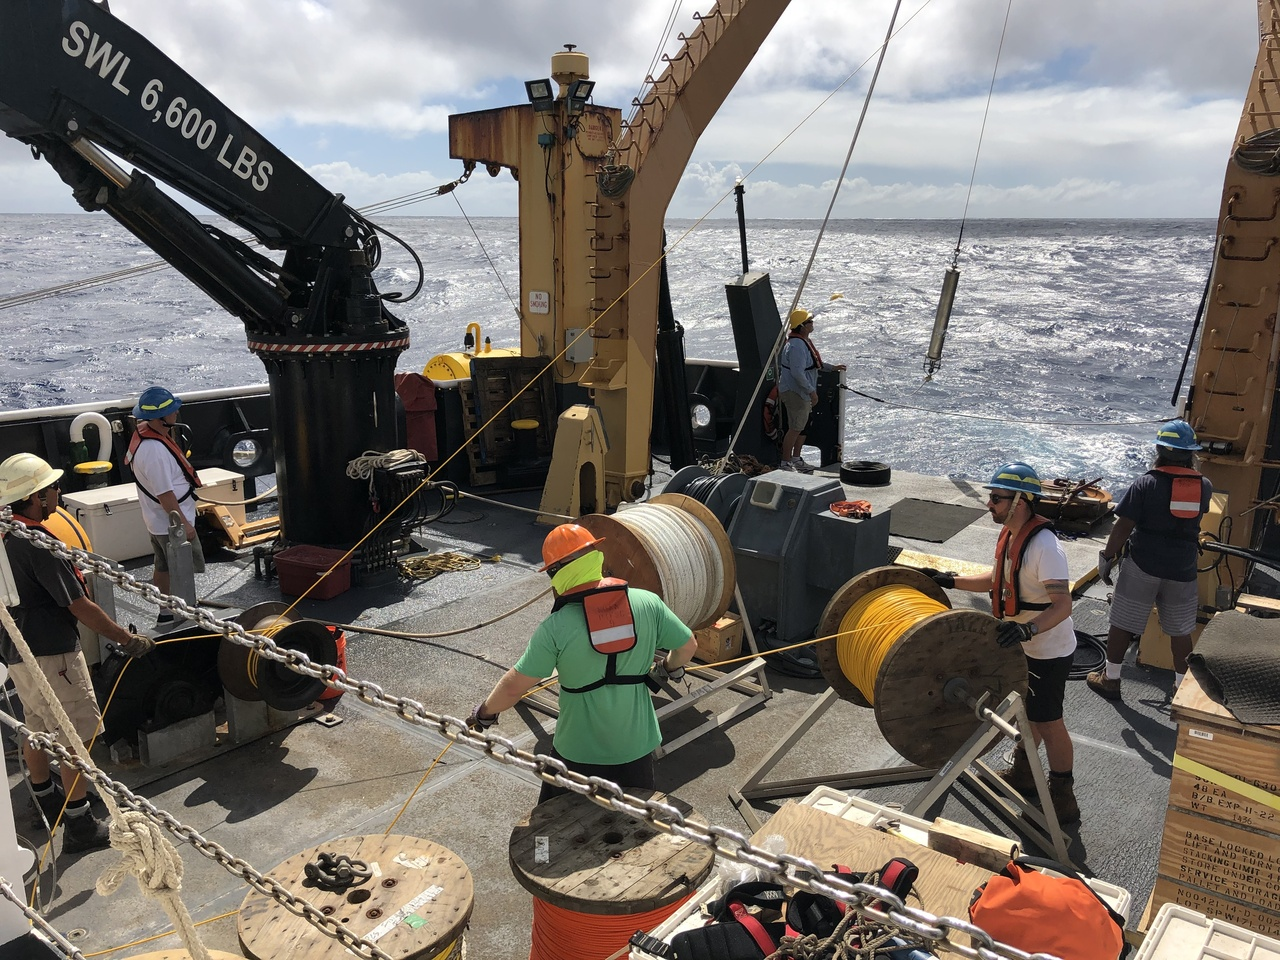 The entire Sette deck crew and CRP staff member, Erik Norris, were involved in the recovery and redeployment of the PMEL listening station device. The recovered recording device was deployed in July during our 2017 HICEAS project, https://www.fisheries.noaa.gov/feature-story/heading-high-seas-hawaiian-islands-cetacean-and-ecosystem-assessment-survey, and today a new recording device is lowered into the water during the redeployment. For more information on the acoustic recorder, check out https://www.pmel.noaa.gov/acoustics/noaanps-ocean-noise-reference-station-network and https://www.st.nmfs.noaa.gov/feature-news/acoustics. Photo: NOAA Fisheries/Marie Hill.